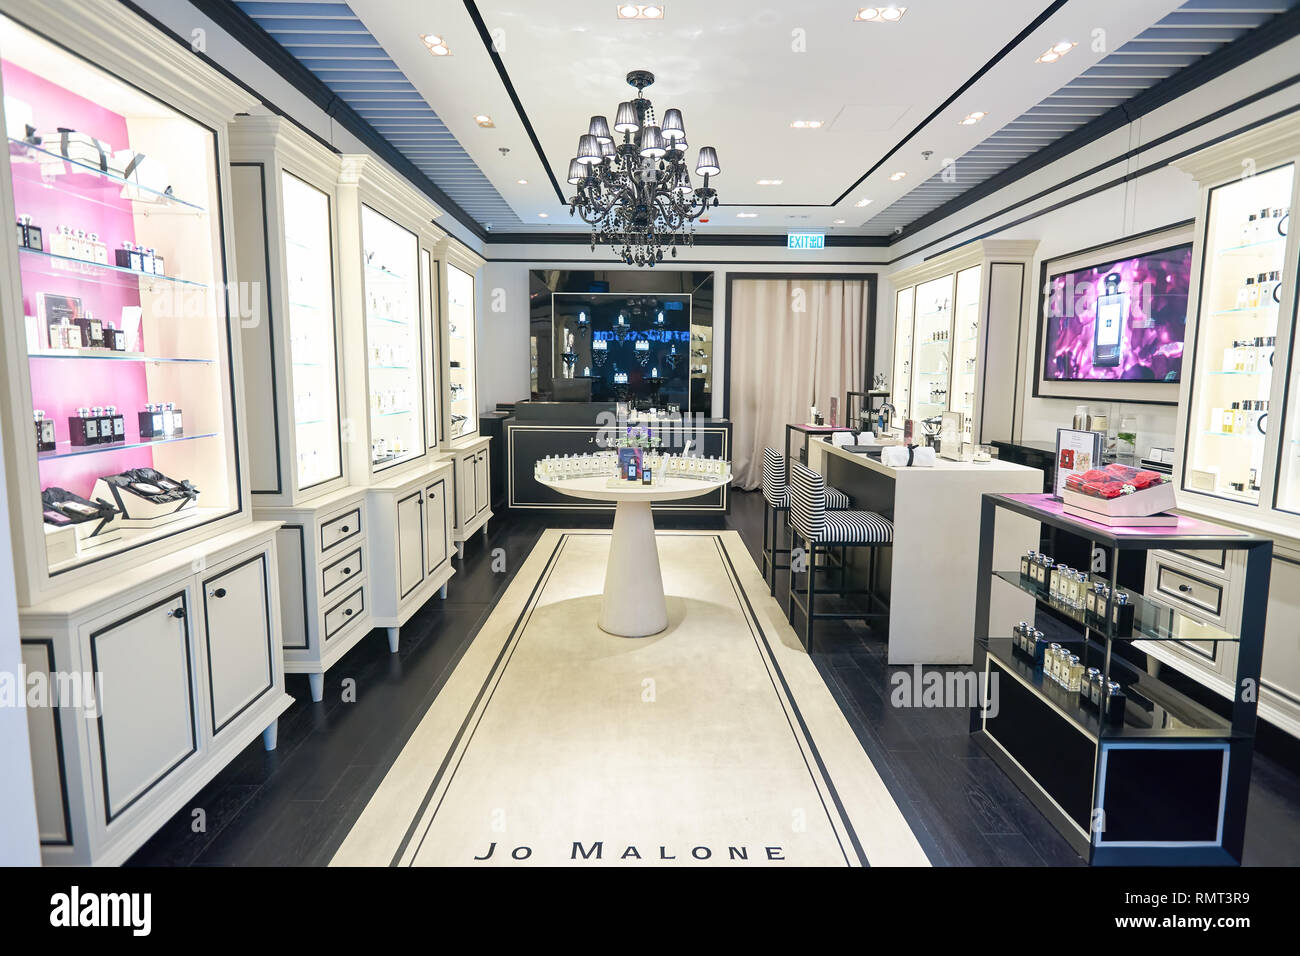 HONG KONG - CIRCA JANUARY, 2016: interior of Jo Malone store in Hong Kong. Jo Malone London is known for its expensive perfumes, luxury candles, bath  - Stock Image